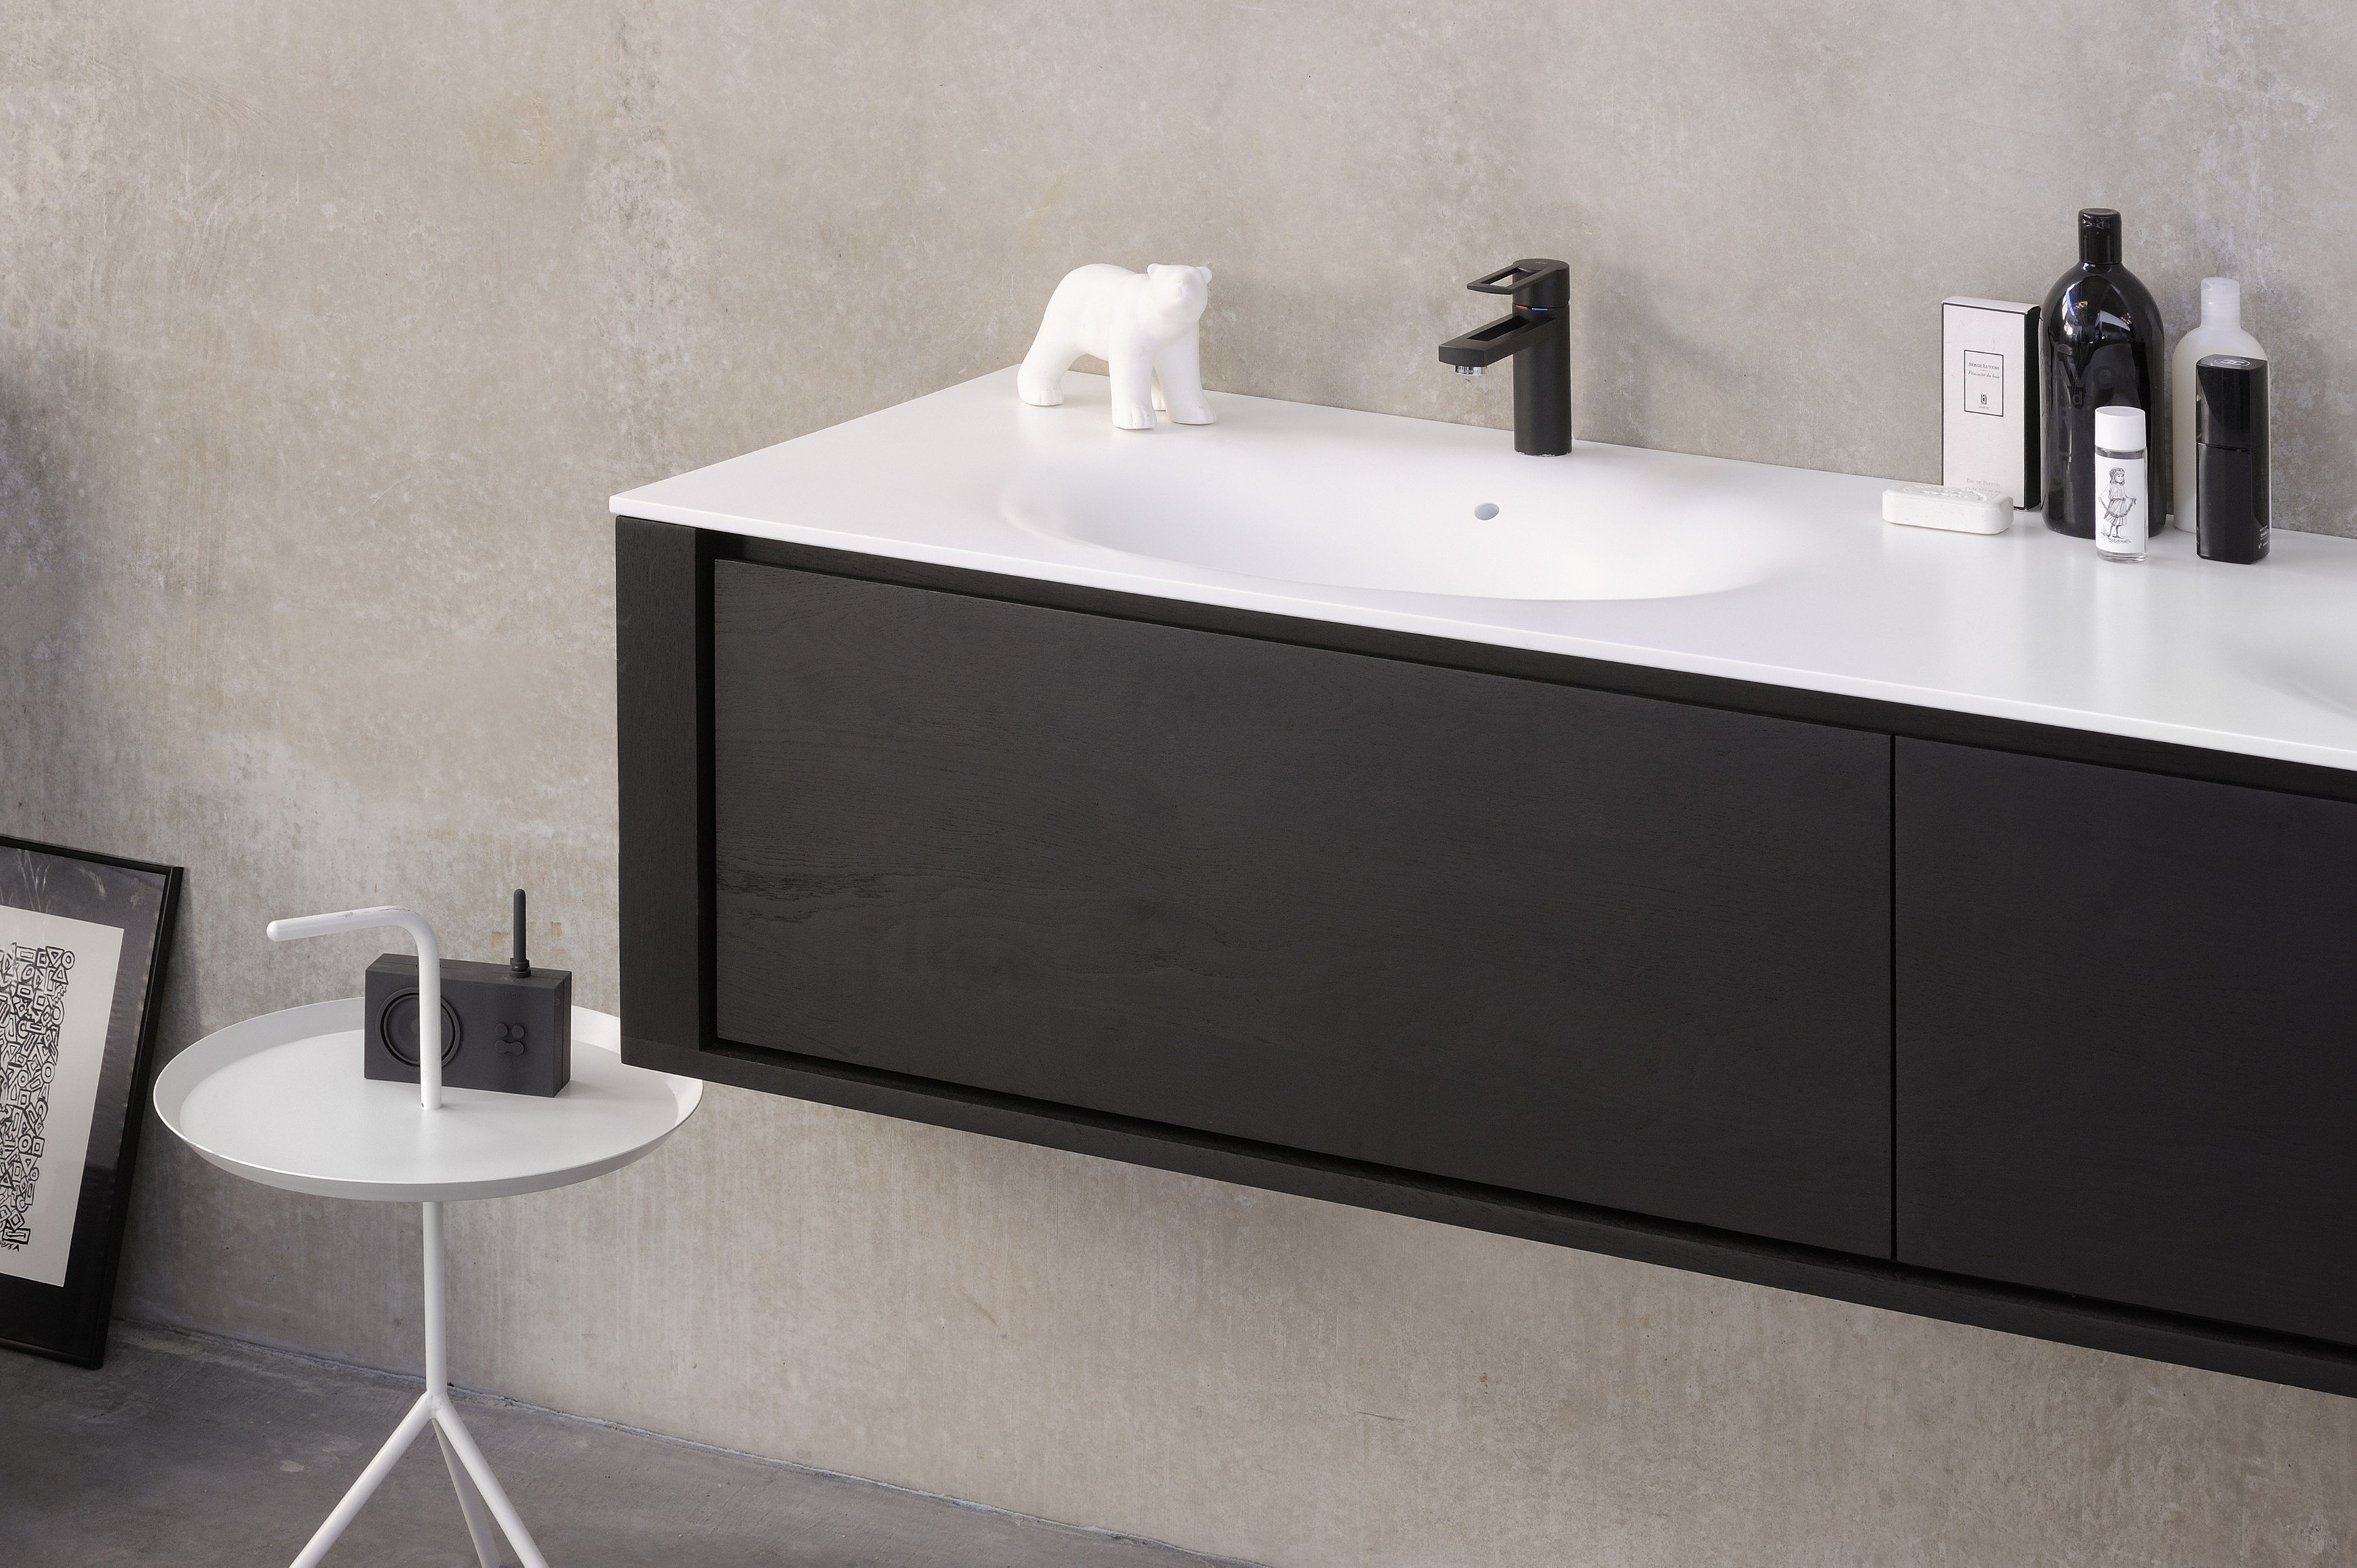 #70655B QUALITIME BLACK Vanity Unit With Drawers Qualitime Black  with 3467x2307 px of Best Wall Mounted Dresser Drawers 23073467 image @ avoidforclosure.info